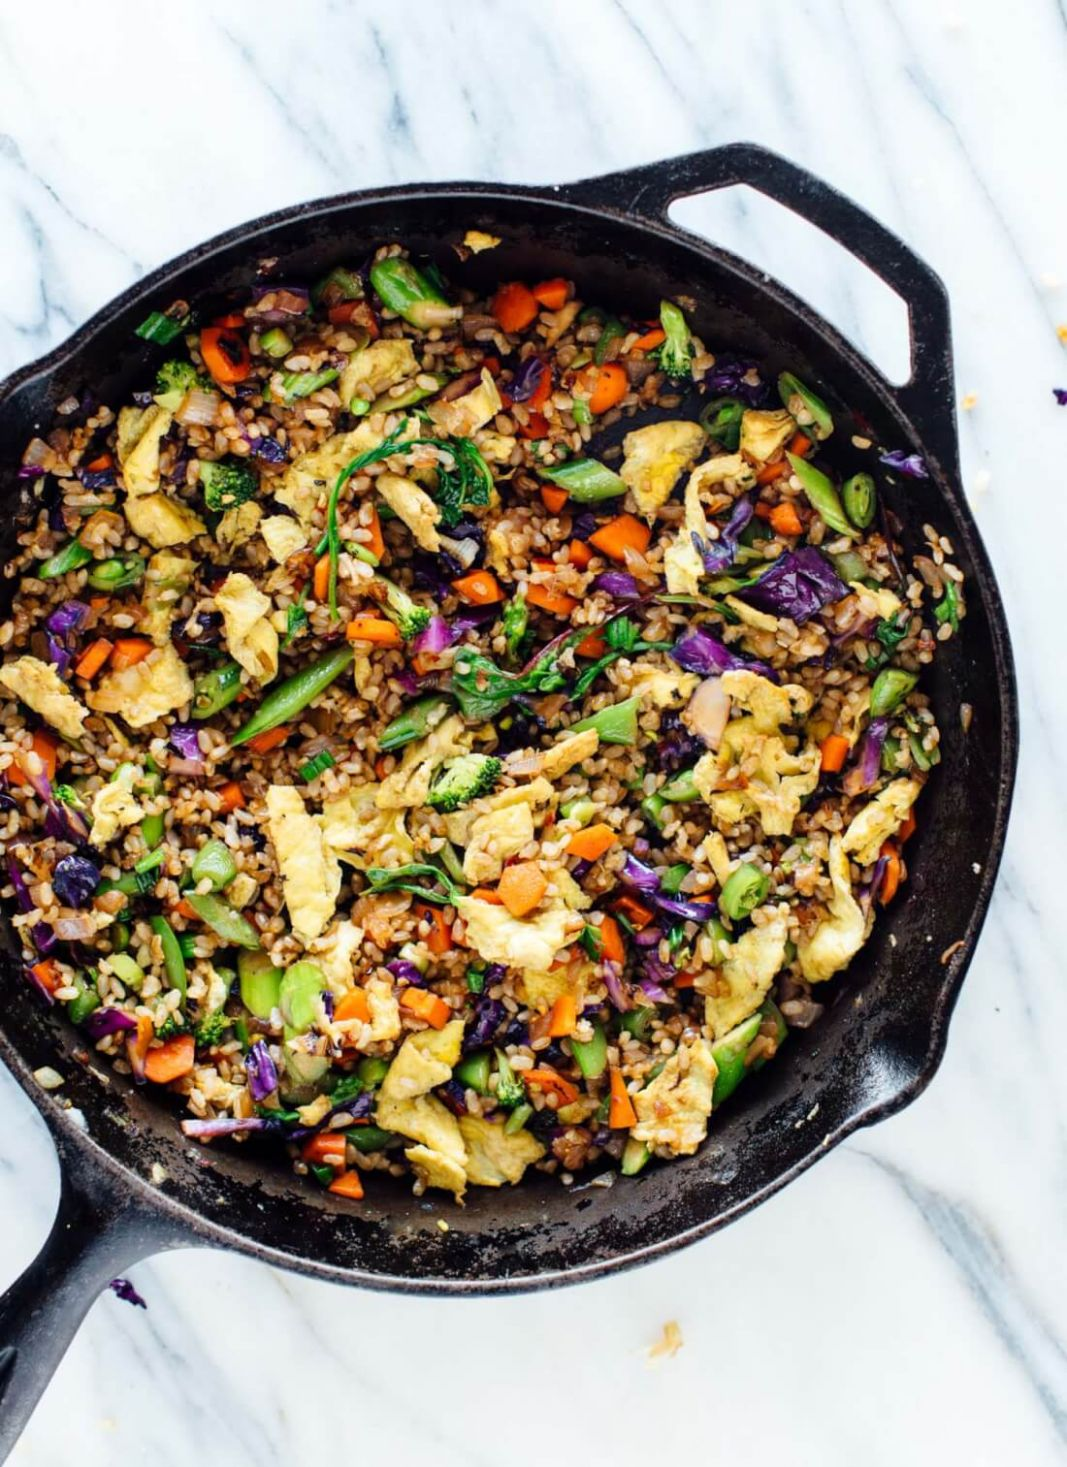 9 Best Vegetarian Recipes - Cookie and Kate - Vegetarian Recipes Yummy